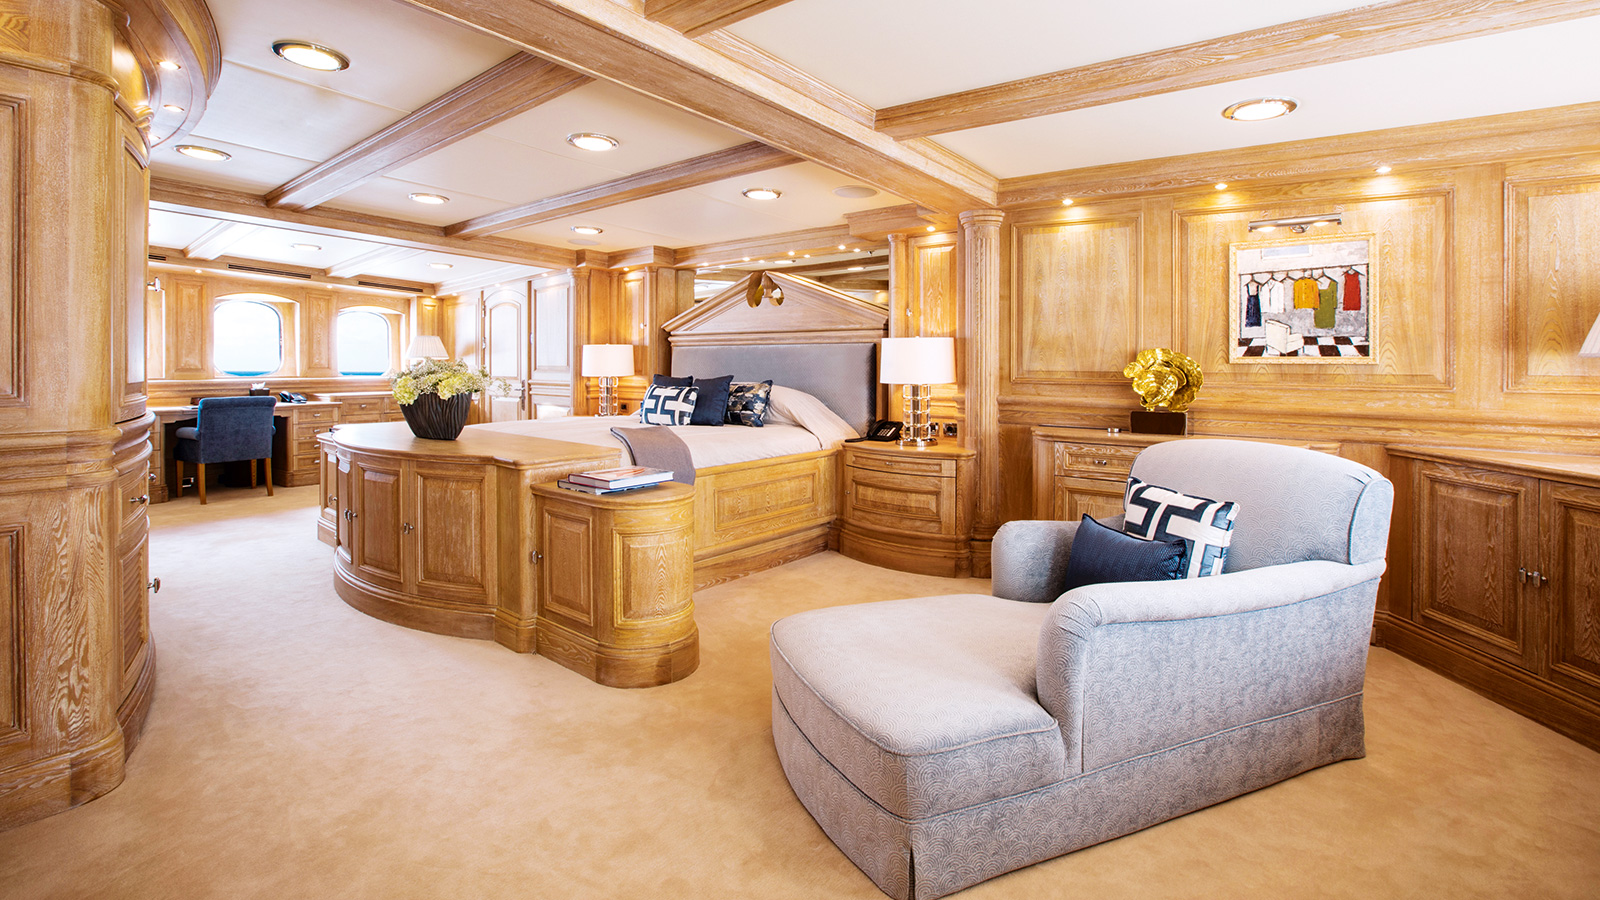 the-owners-cabin-of-the-modern-classic-yacht-nero-after-her-mb92-refit-credit-stuart-pearce